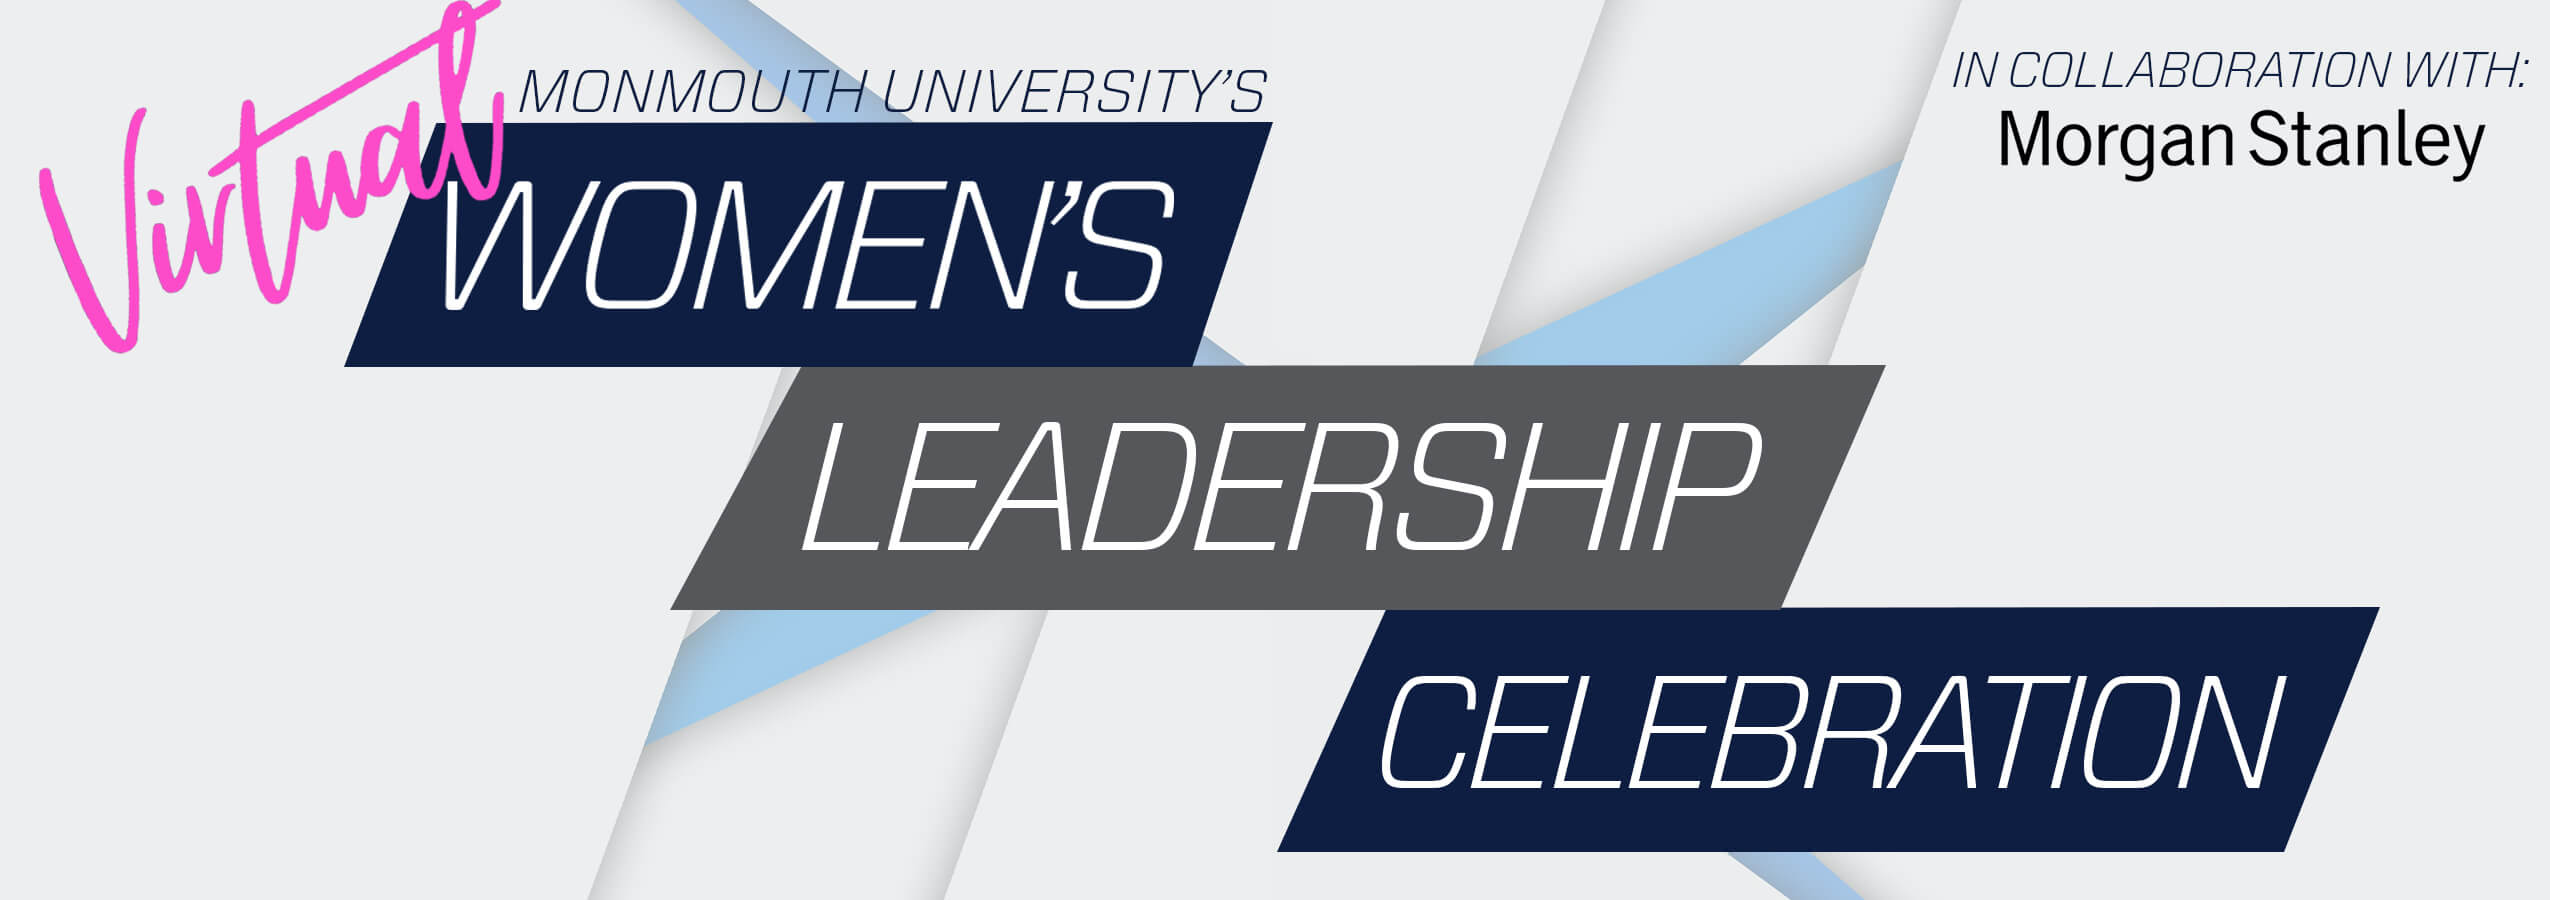 Virtual Women's Leadership Celebration, In Collaboration with Morgan Stanley